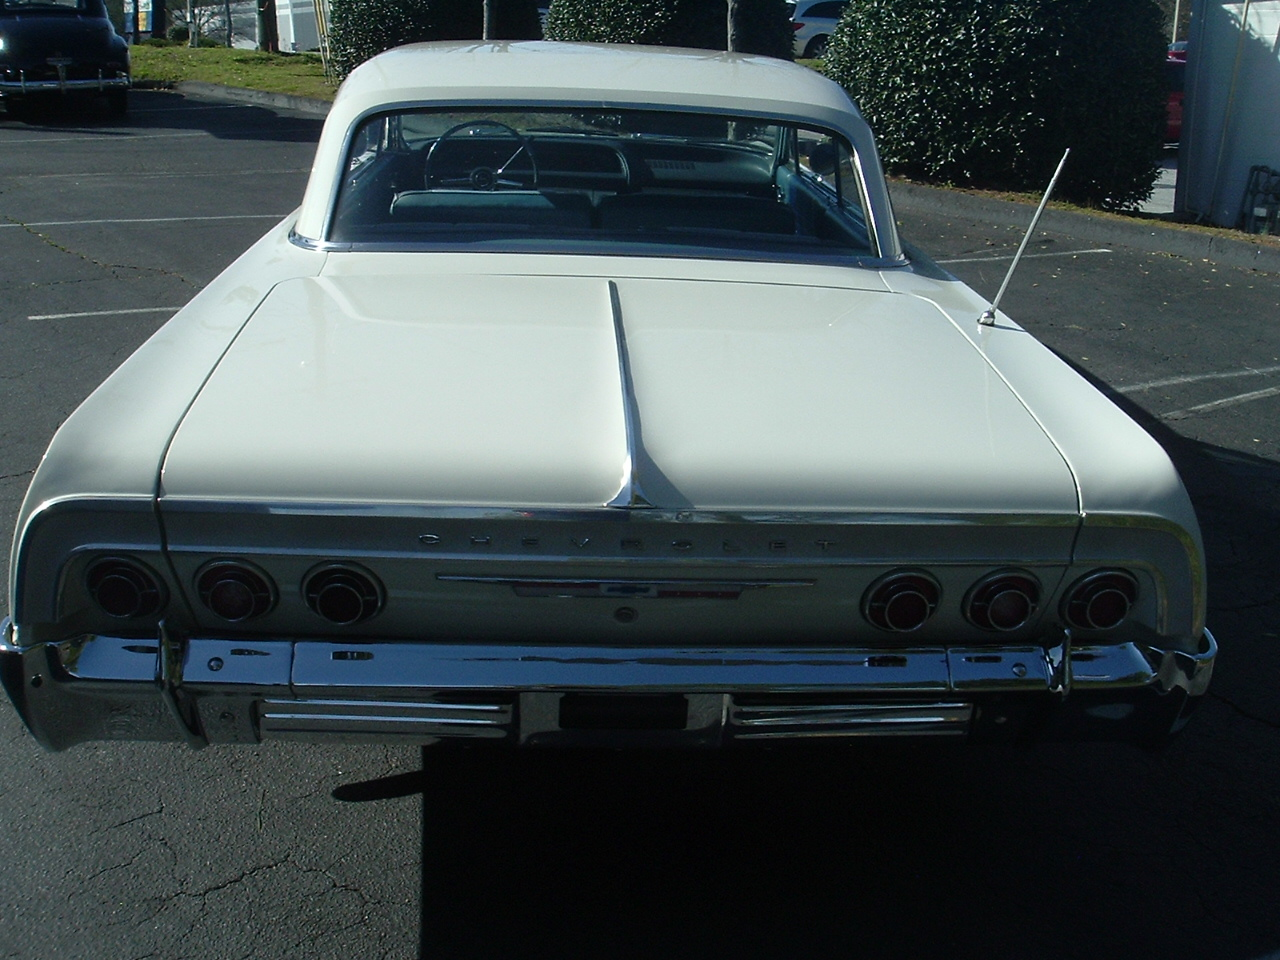 1964 Impala Two Door Hardtop White (4)